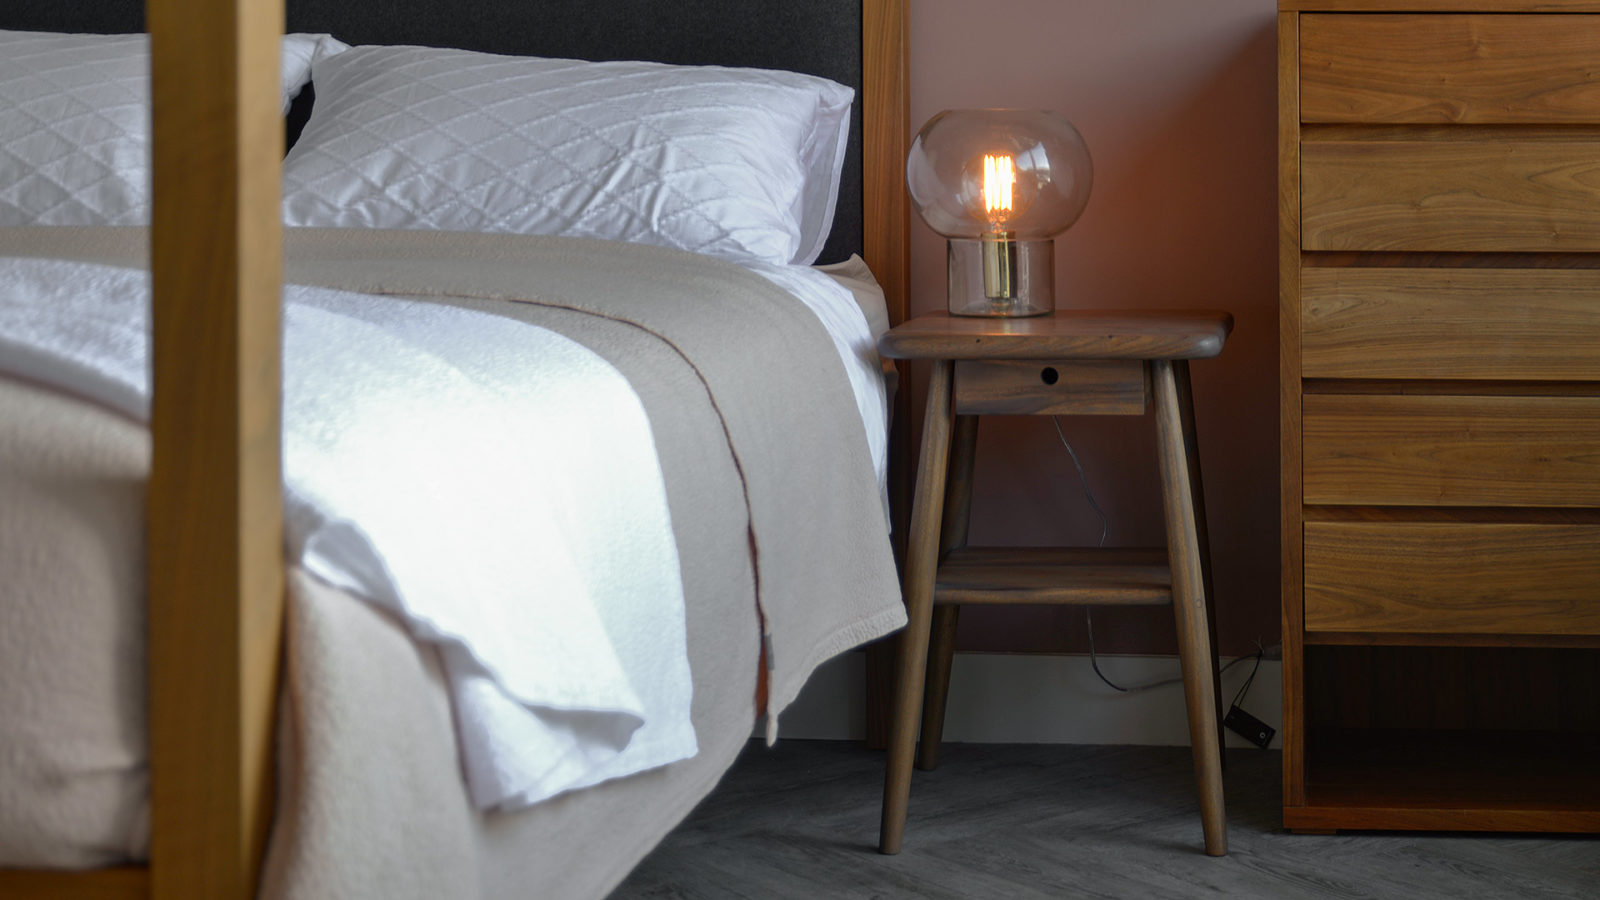 Bedside Table with Drawer and Shelf - mid century look bedside tables